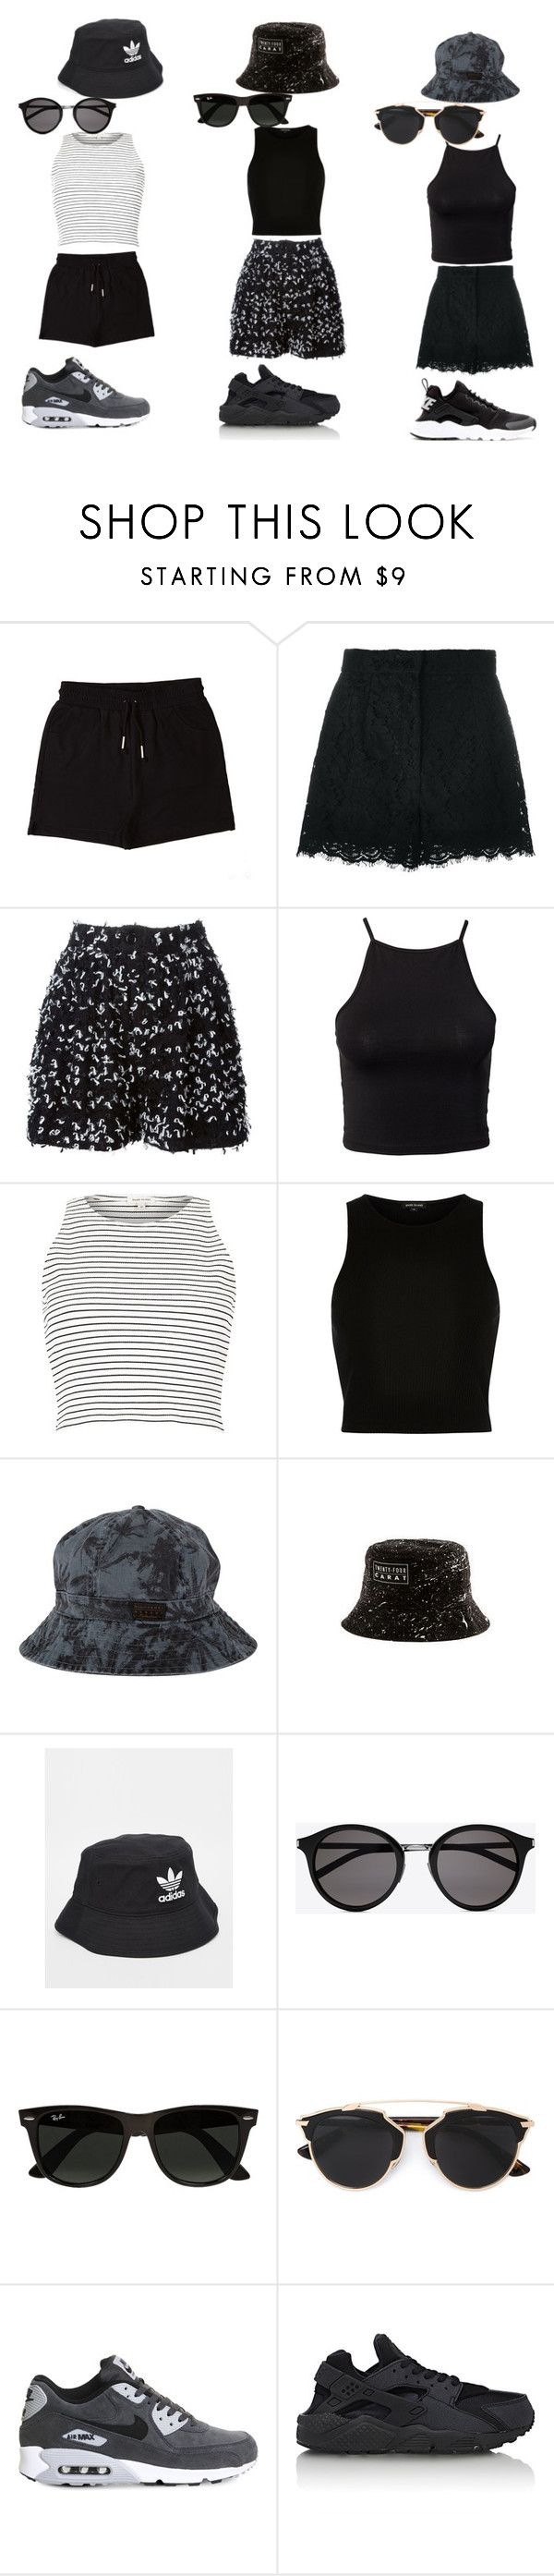 """""""Bucket Hats outfits"""" by fernandacastillo103 on Polyvore featuring &nd B, Dolce&Gabbana, Julien David, NLY Trend, River Island, Billabong, adidas Originals, Yves Saint Laurent, Ray-Ban and Christian Dior"""